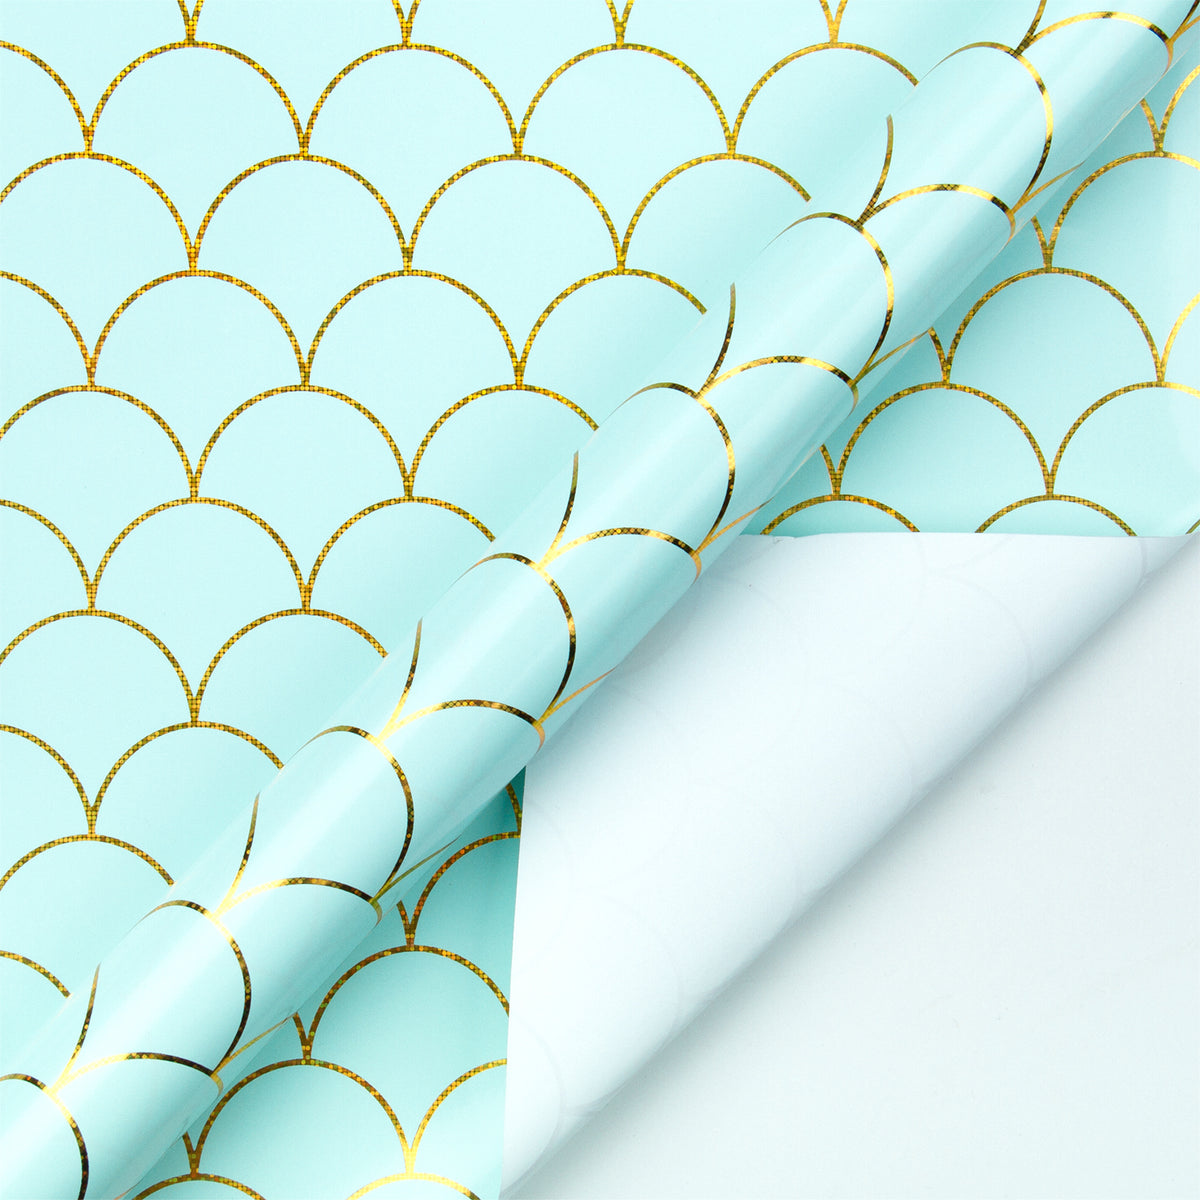 Wrapaholic-Mint-Color -with-Gold-Foil- Mermaid-Design-Gift- Wrapping -Paper-Roll-3